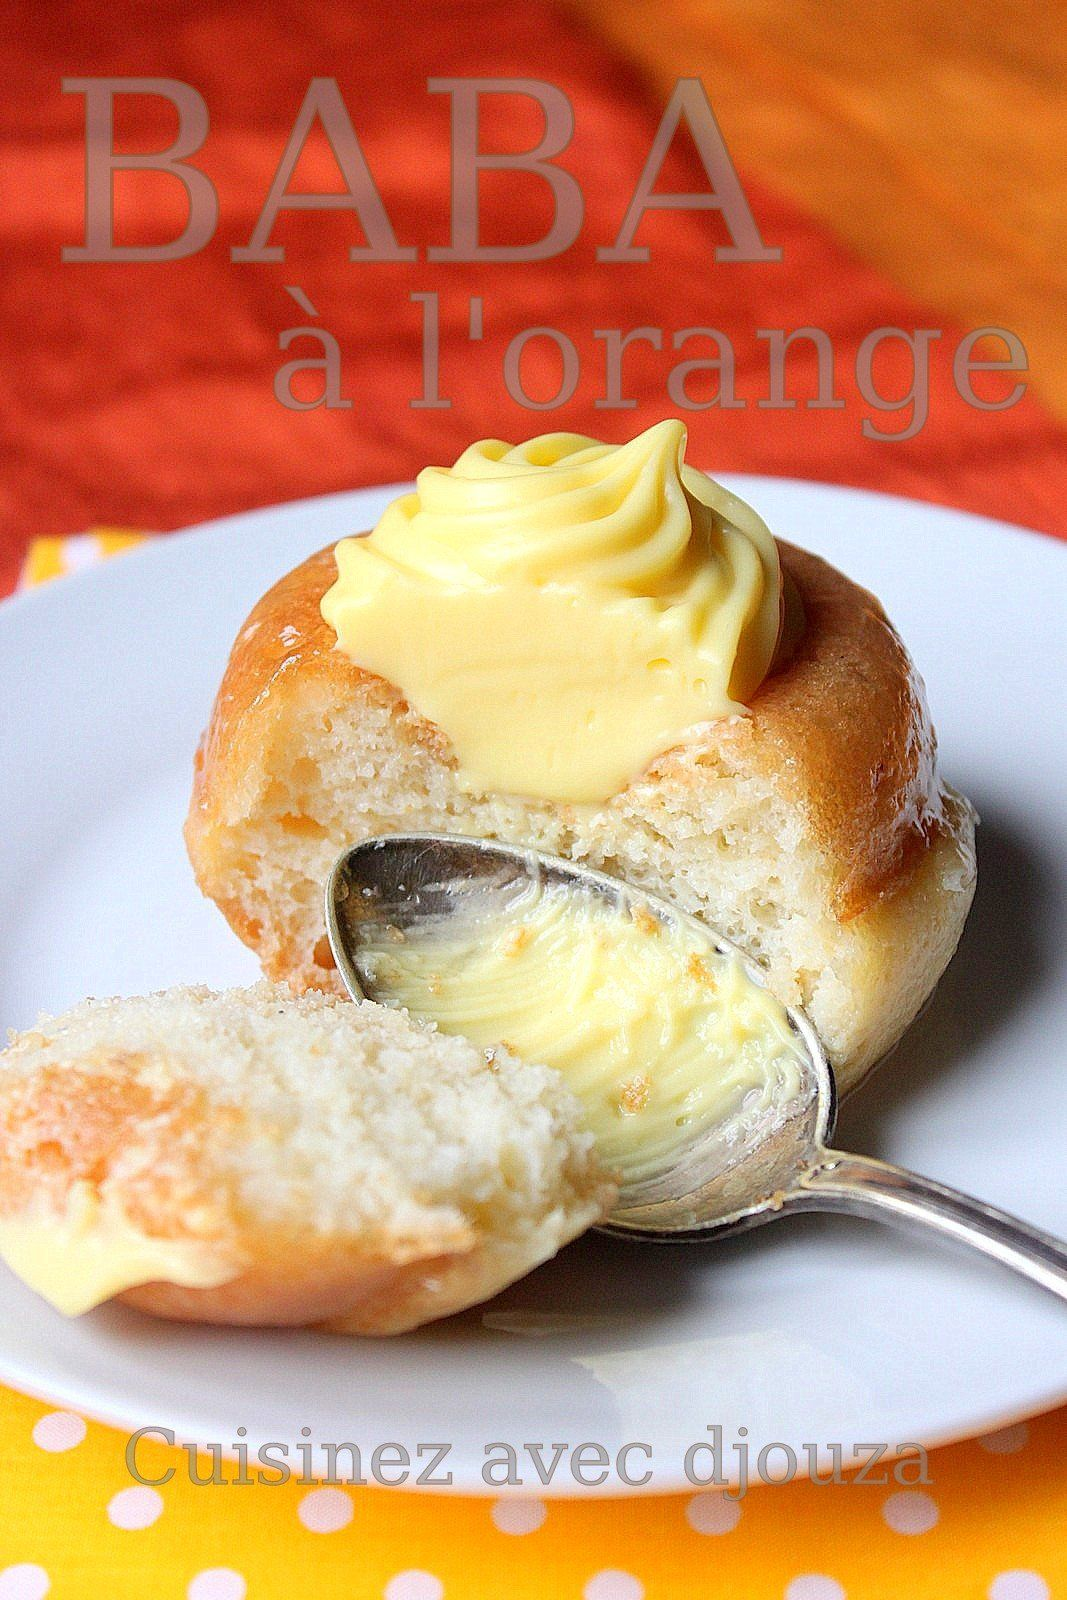 Baba au rhum / mini savarin à l'orange #babaaurhumrecette